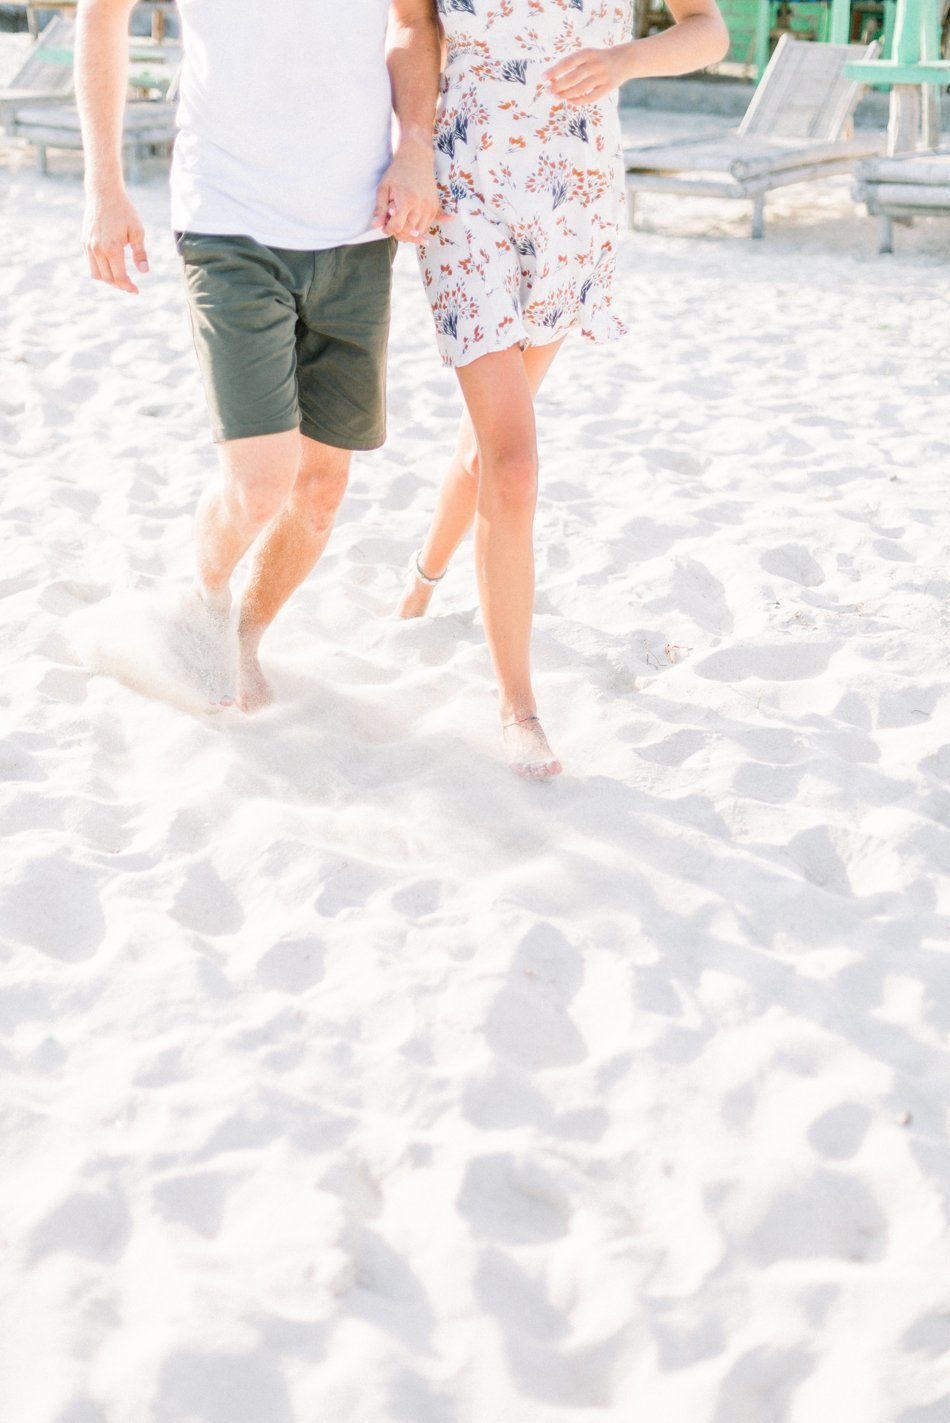 Anne+Max-Lombok_MichelleWeverPhotography-8